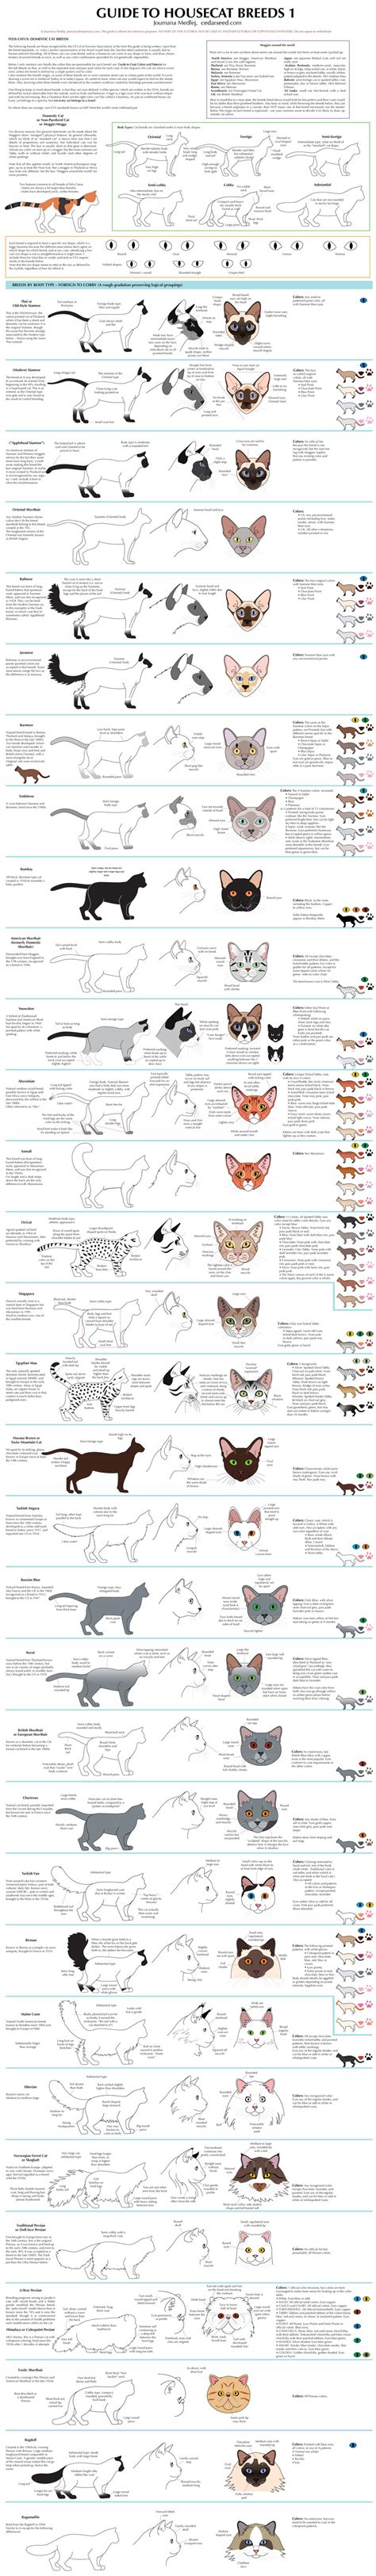 guide breeds guide to housecat breeds 1 by majnouna on deviantart